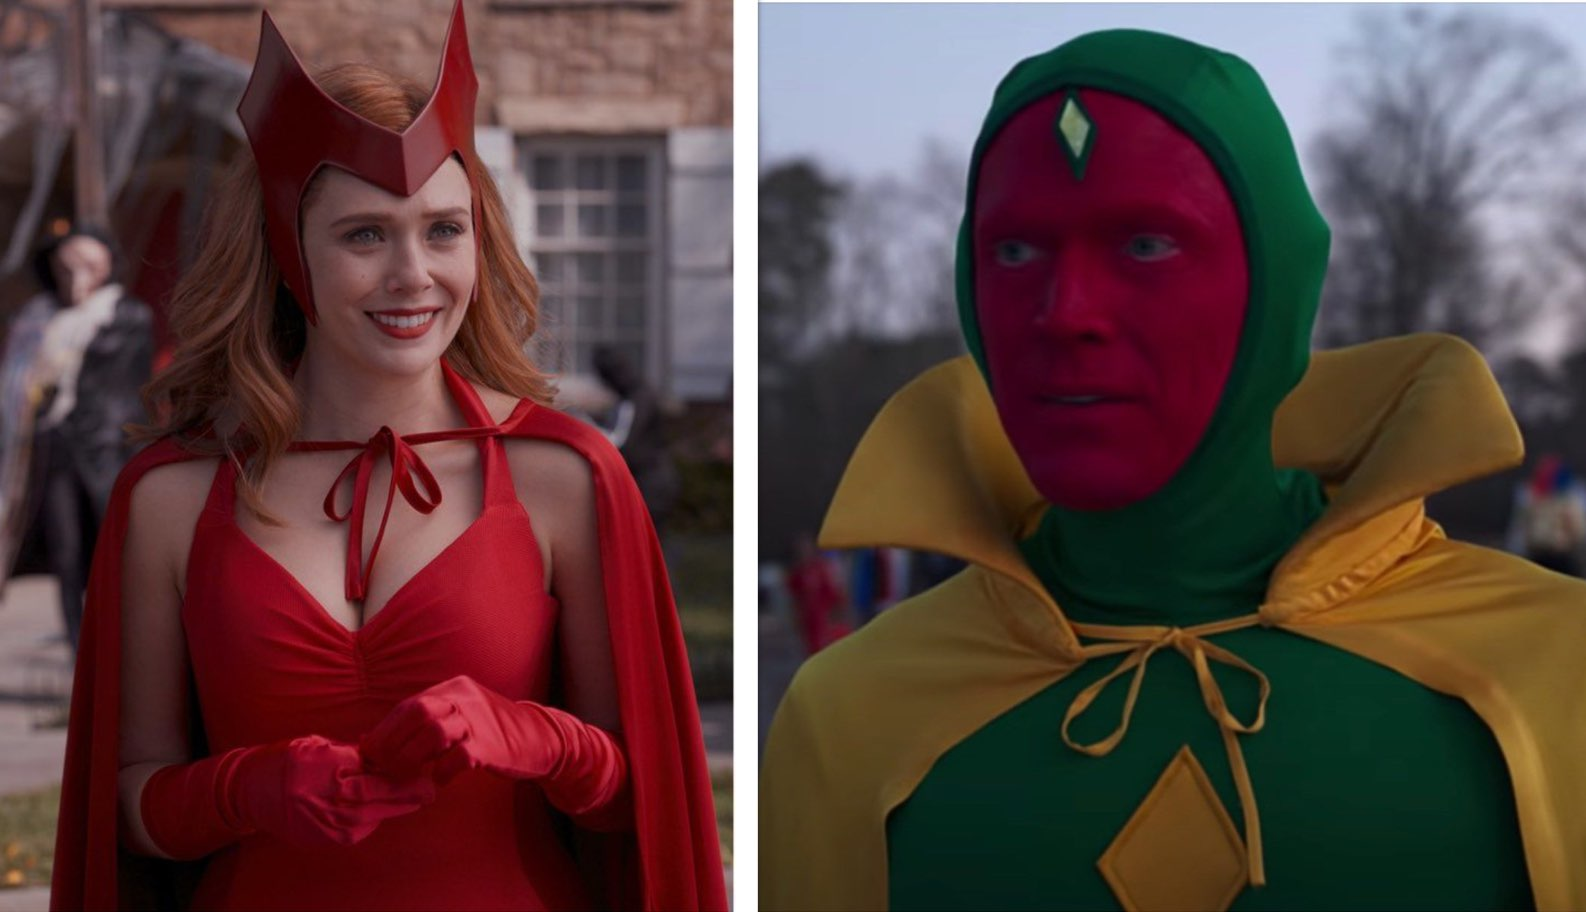 We're also ready to dress up and have some fun! The Best Halloween Costumes For Couples In 2021 Variety